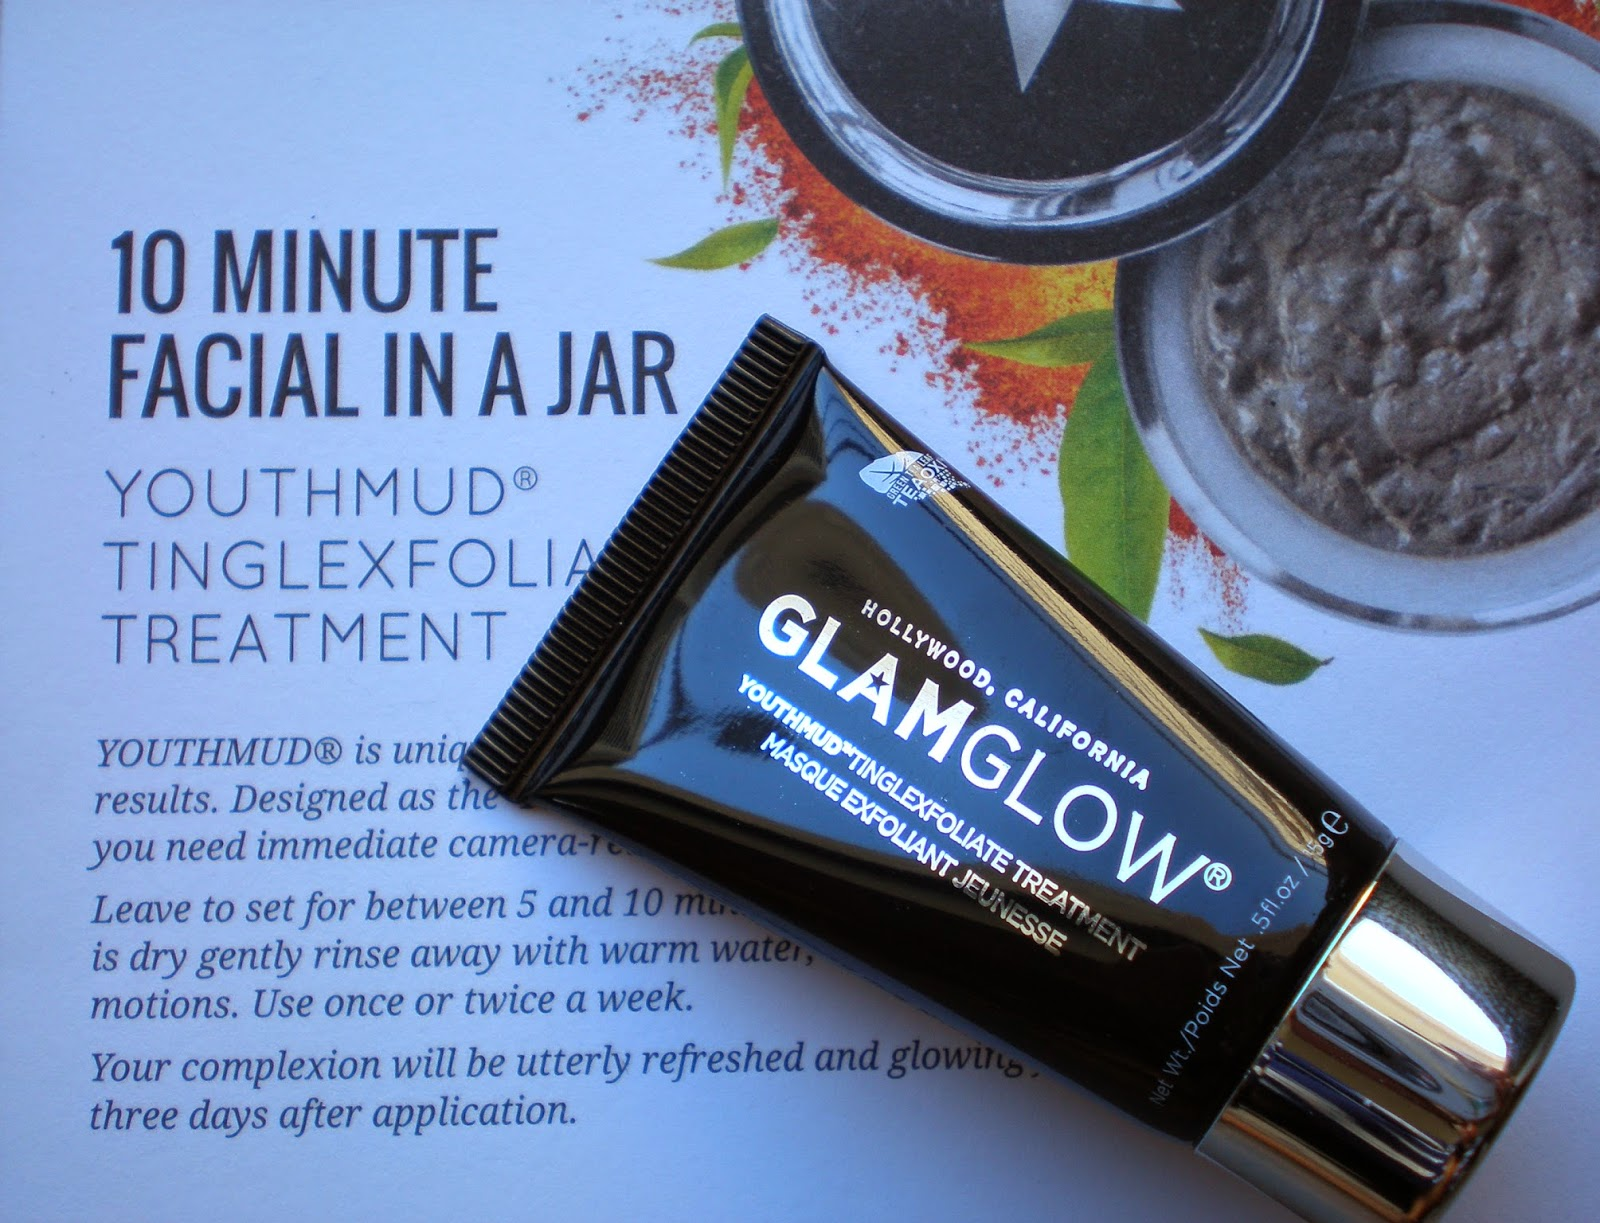 Glam Glow Youth Mud Face Mask